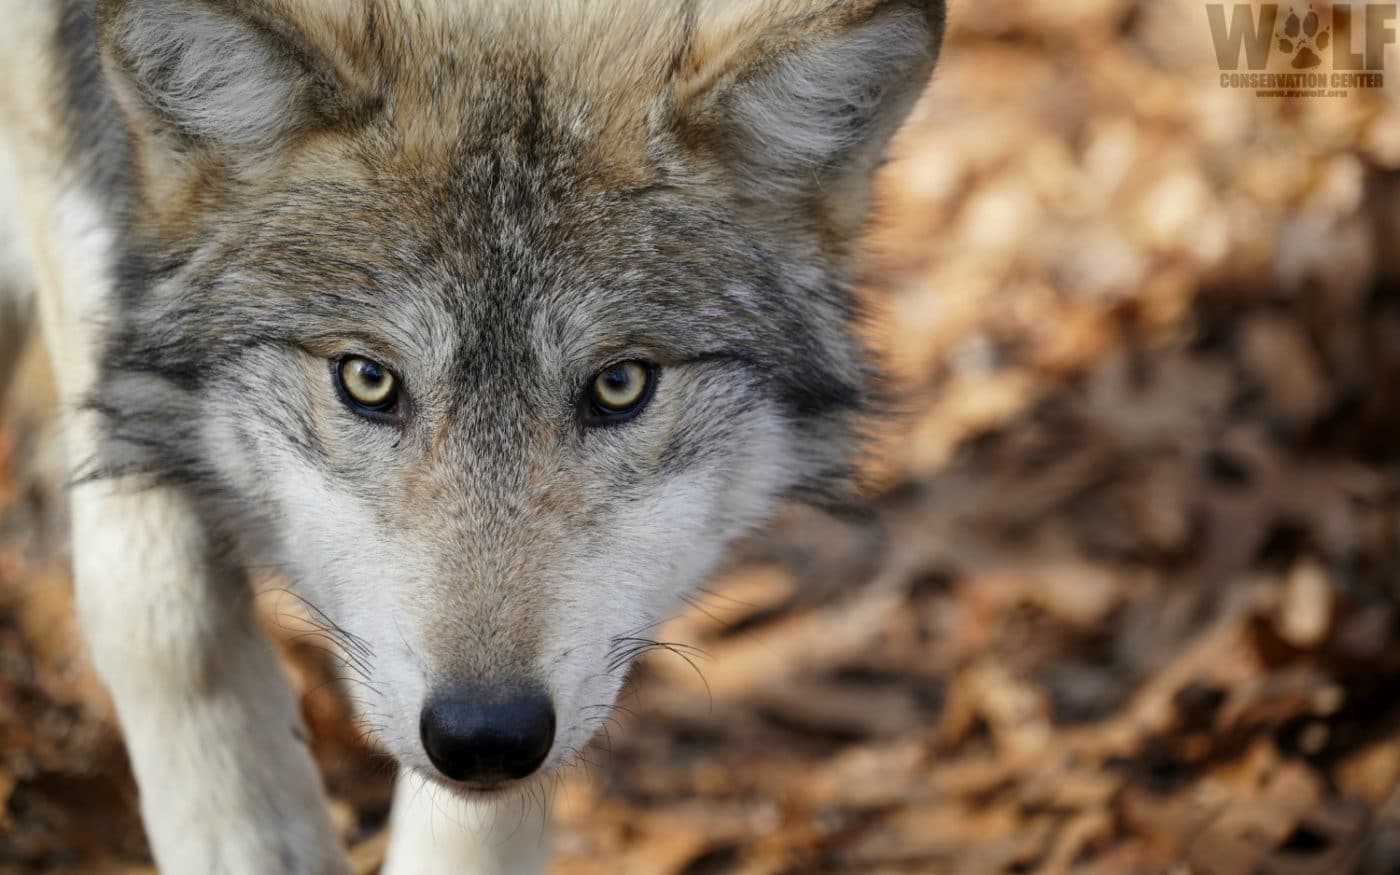 URGENT – Feds Seek To Remove Some Endangered Mexican Gray Wolves from the Wild